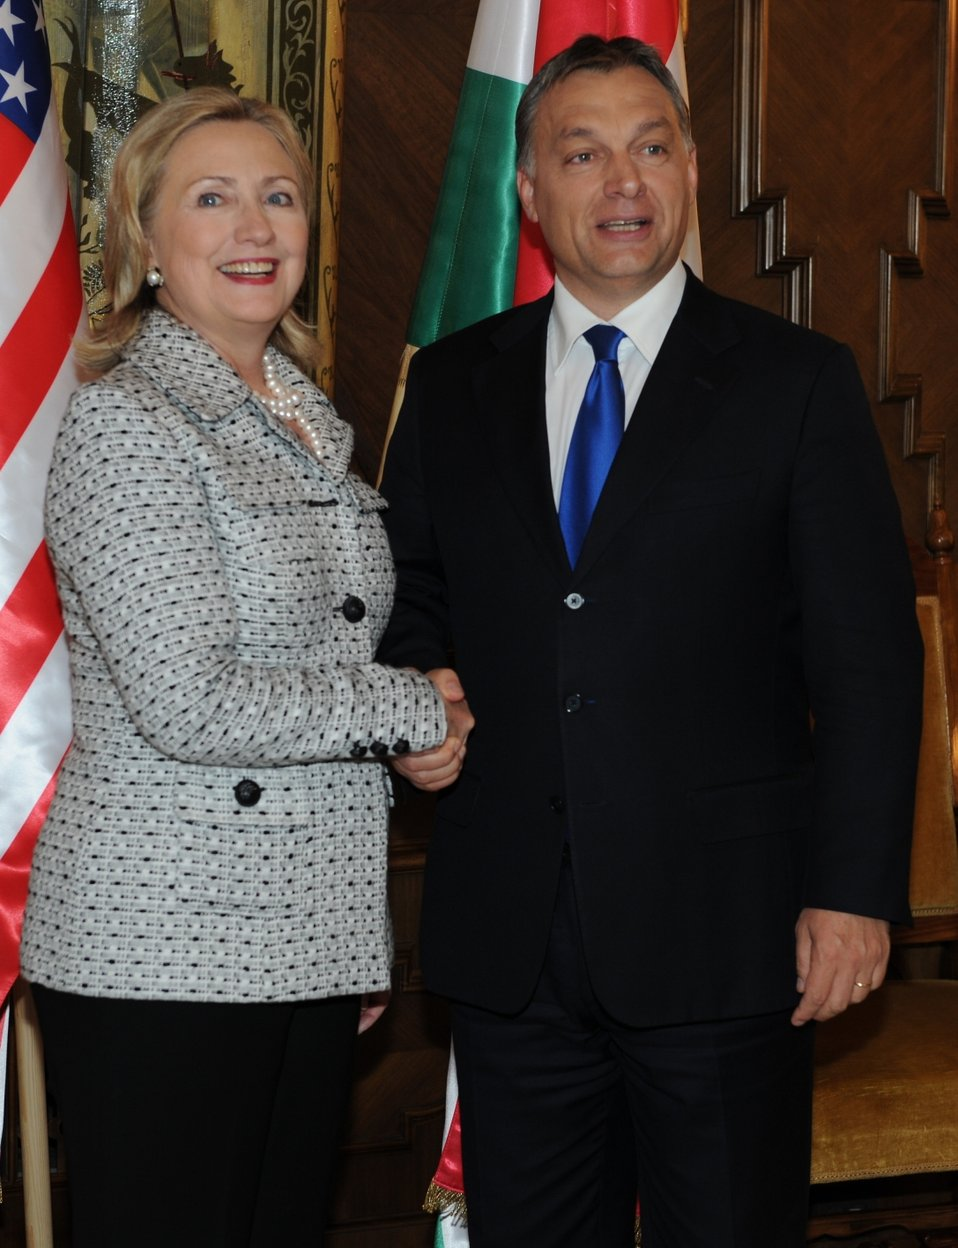 Secretary Clinton and Hungarian Prime Minister Orban Shake Hands